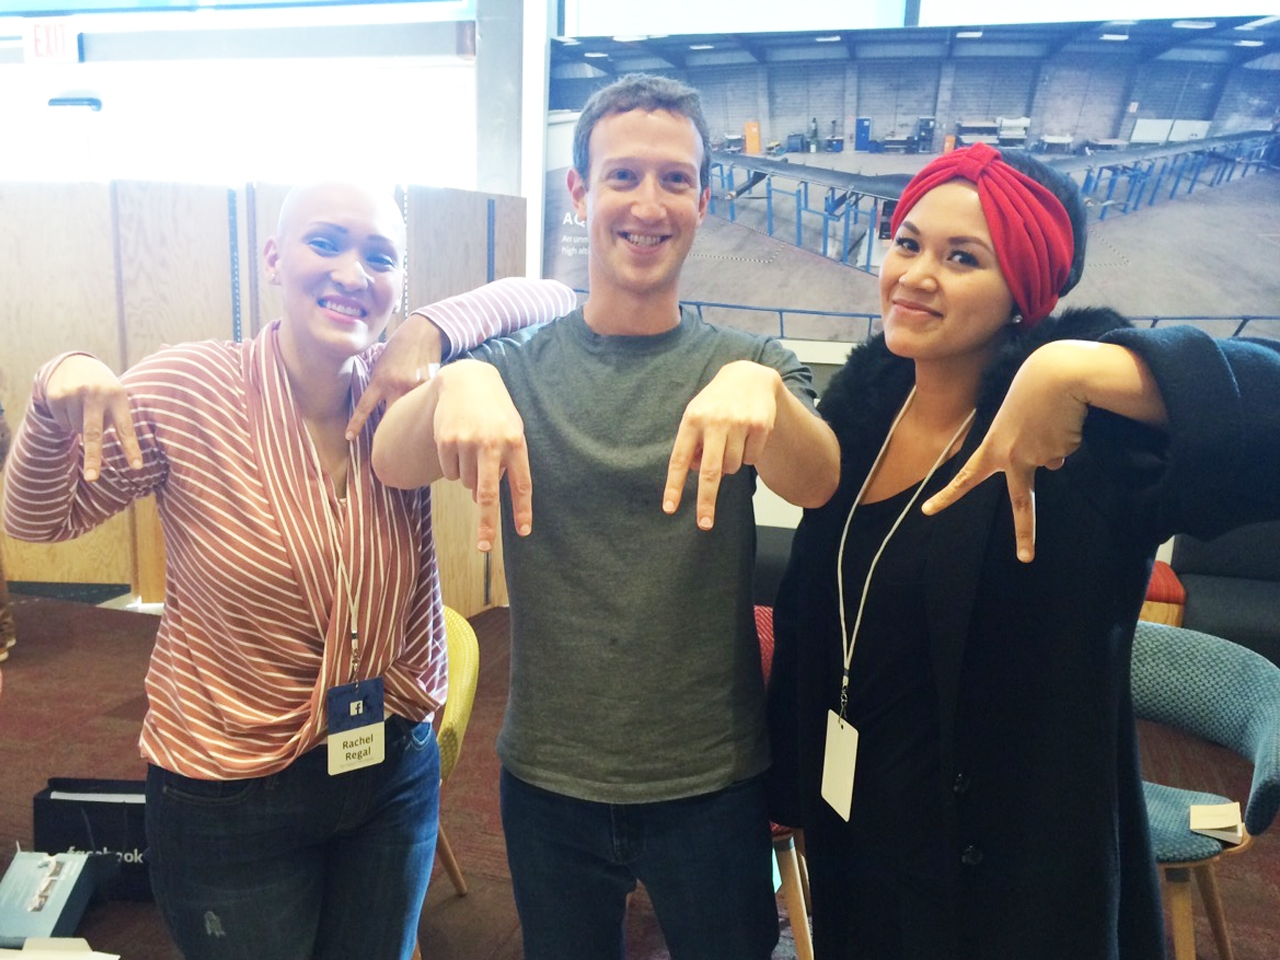 abby asistio mark zuckerberg